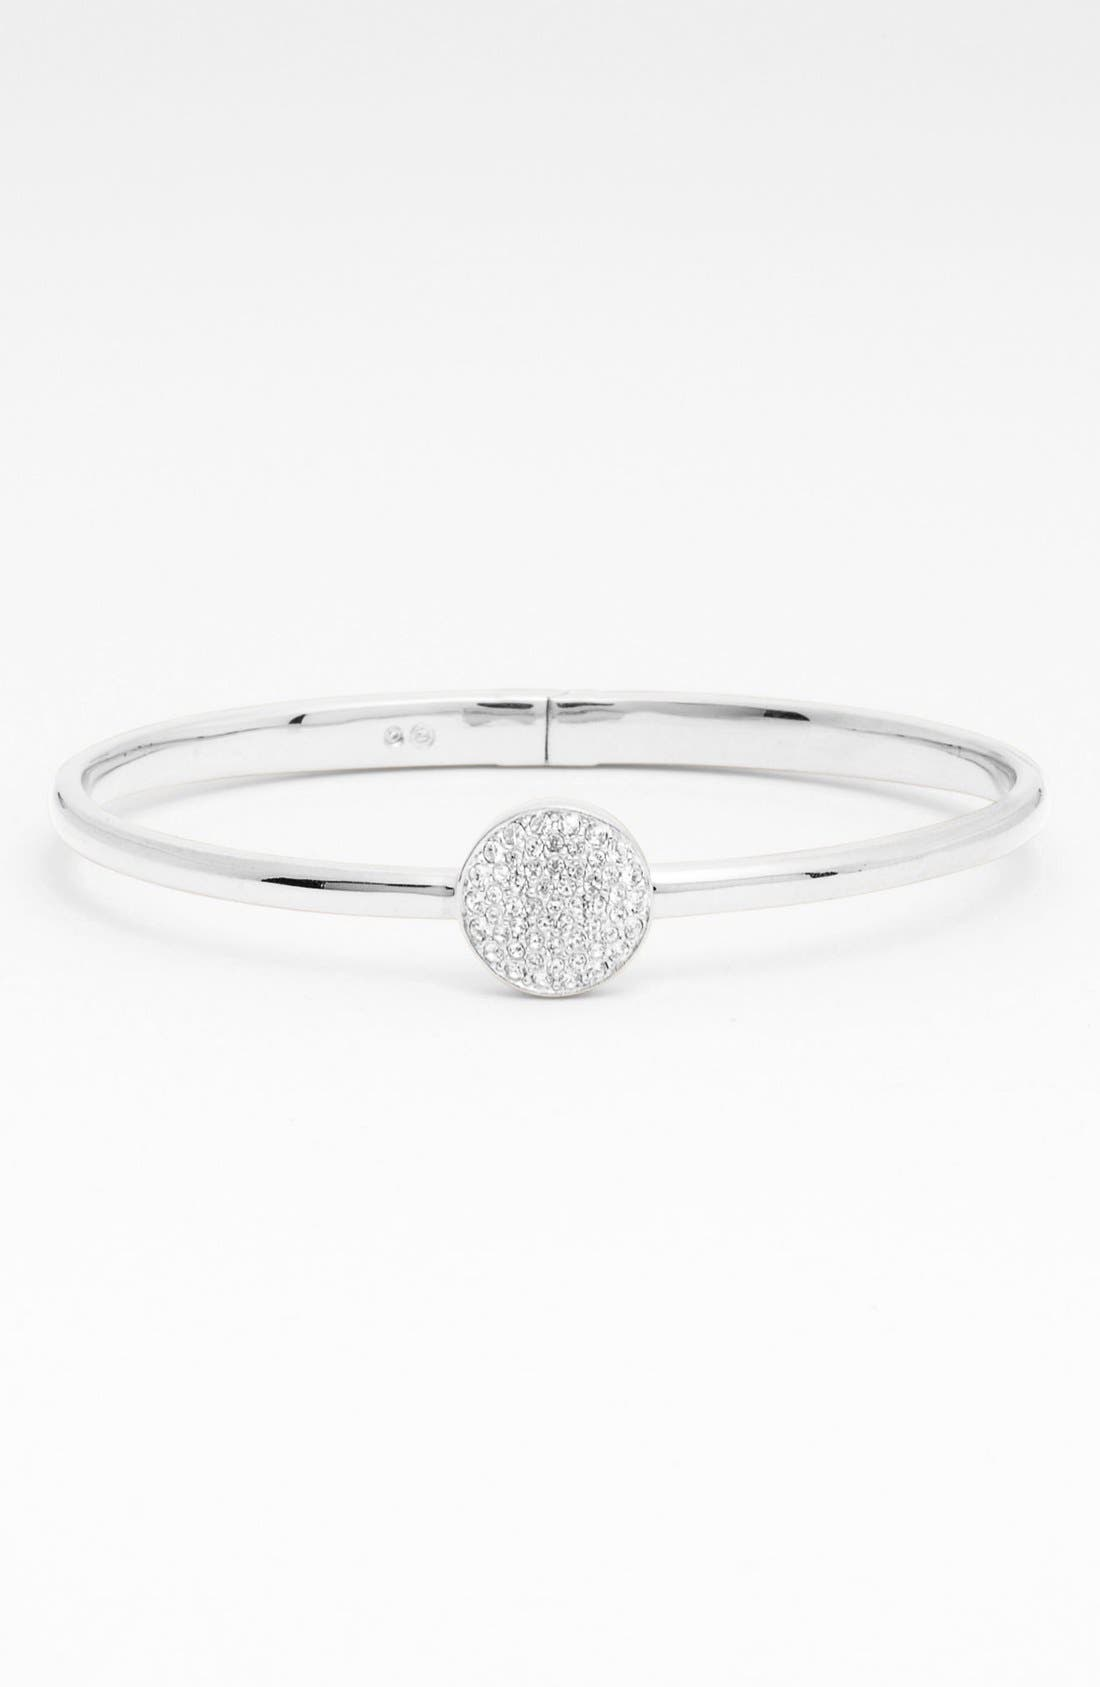 Main Image - Nadri 'Charmers' Pavé Station Hinged Bangle (Nordstrom Exclusive)